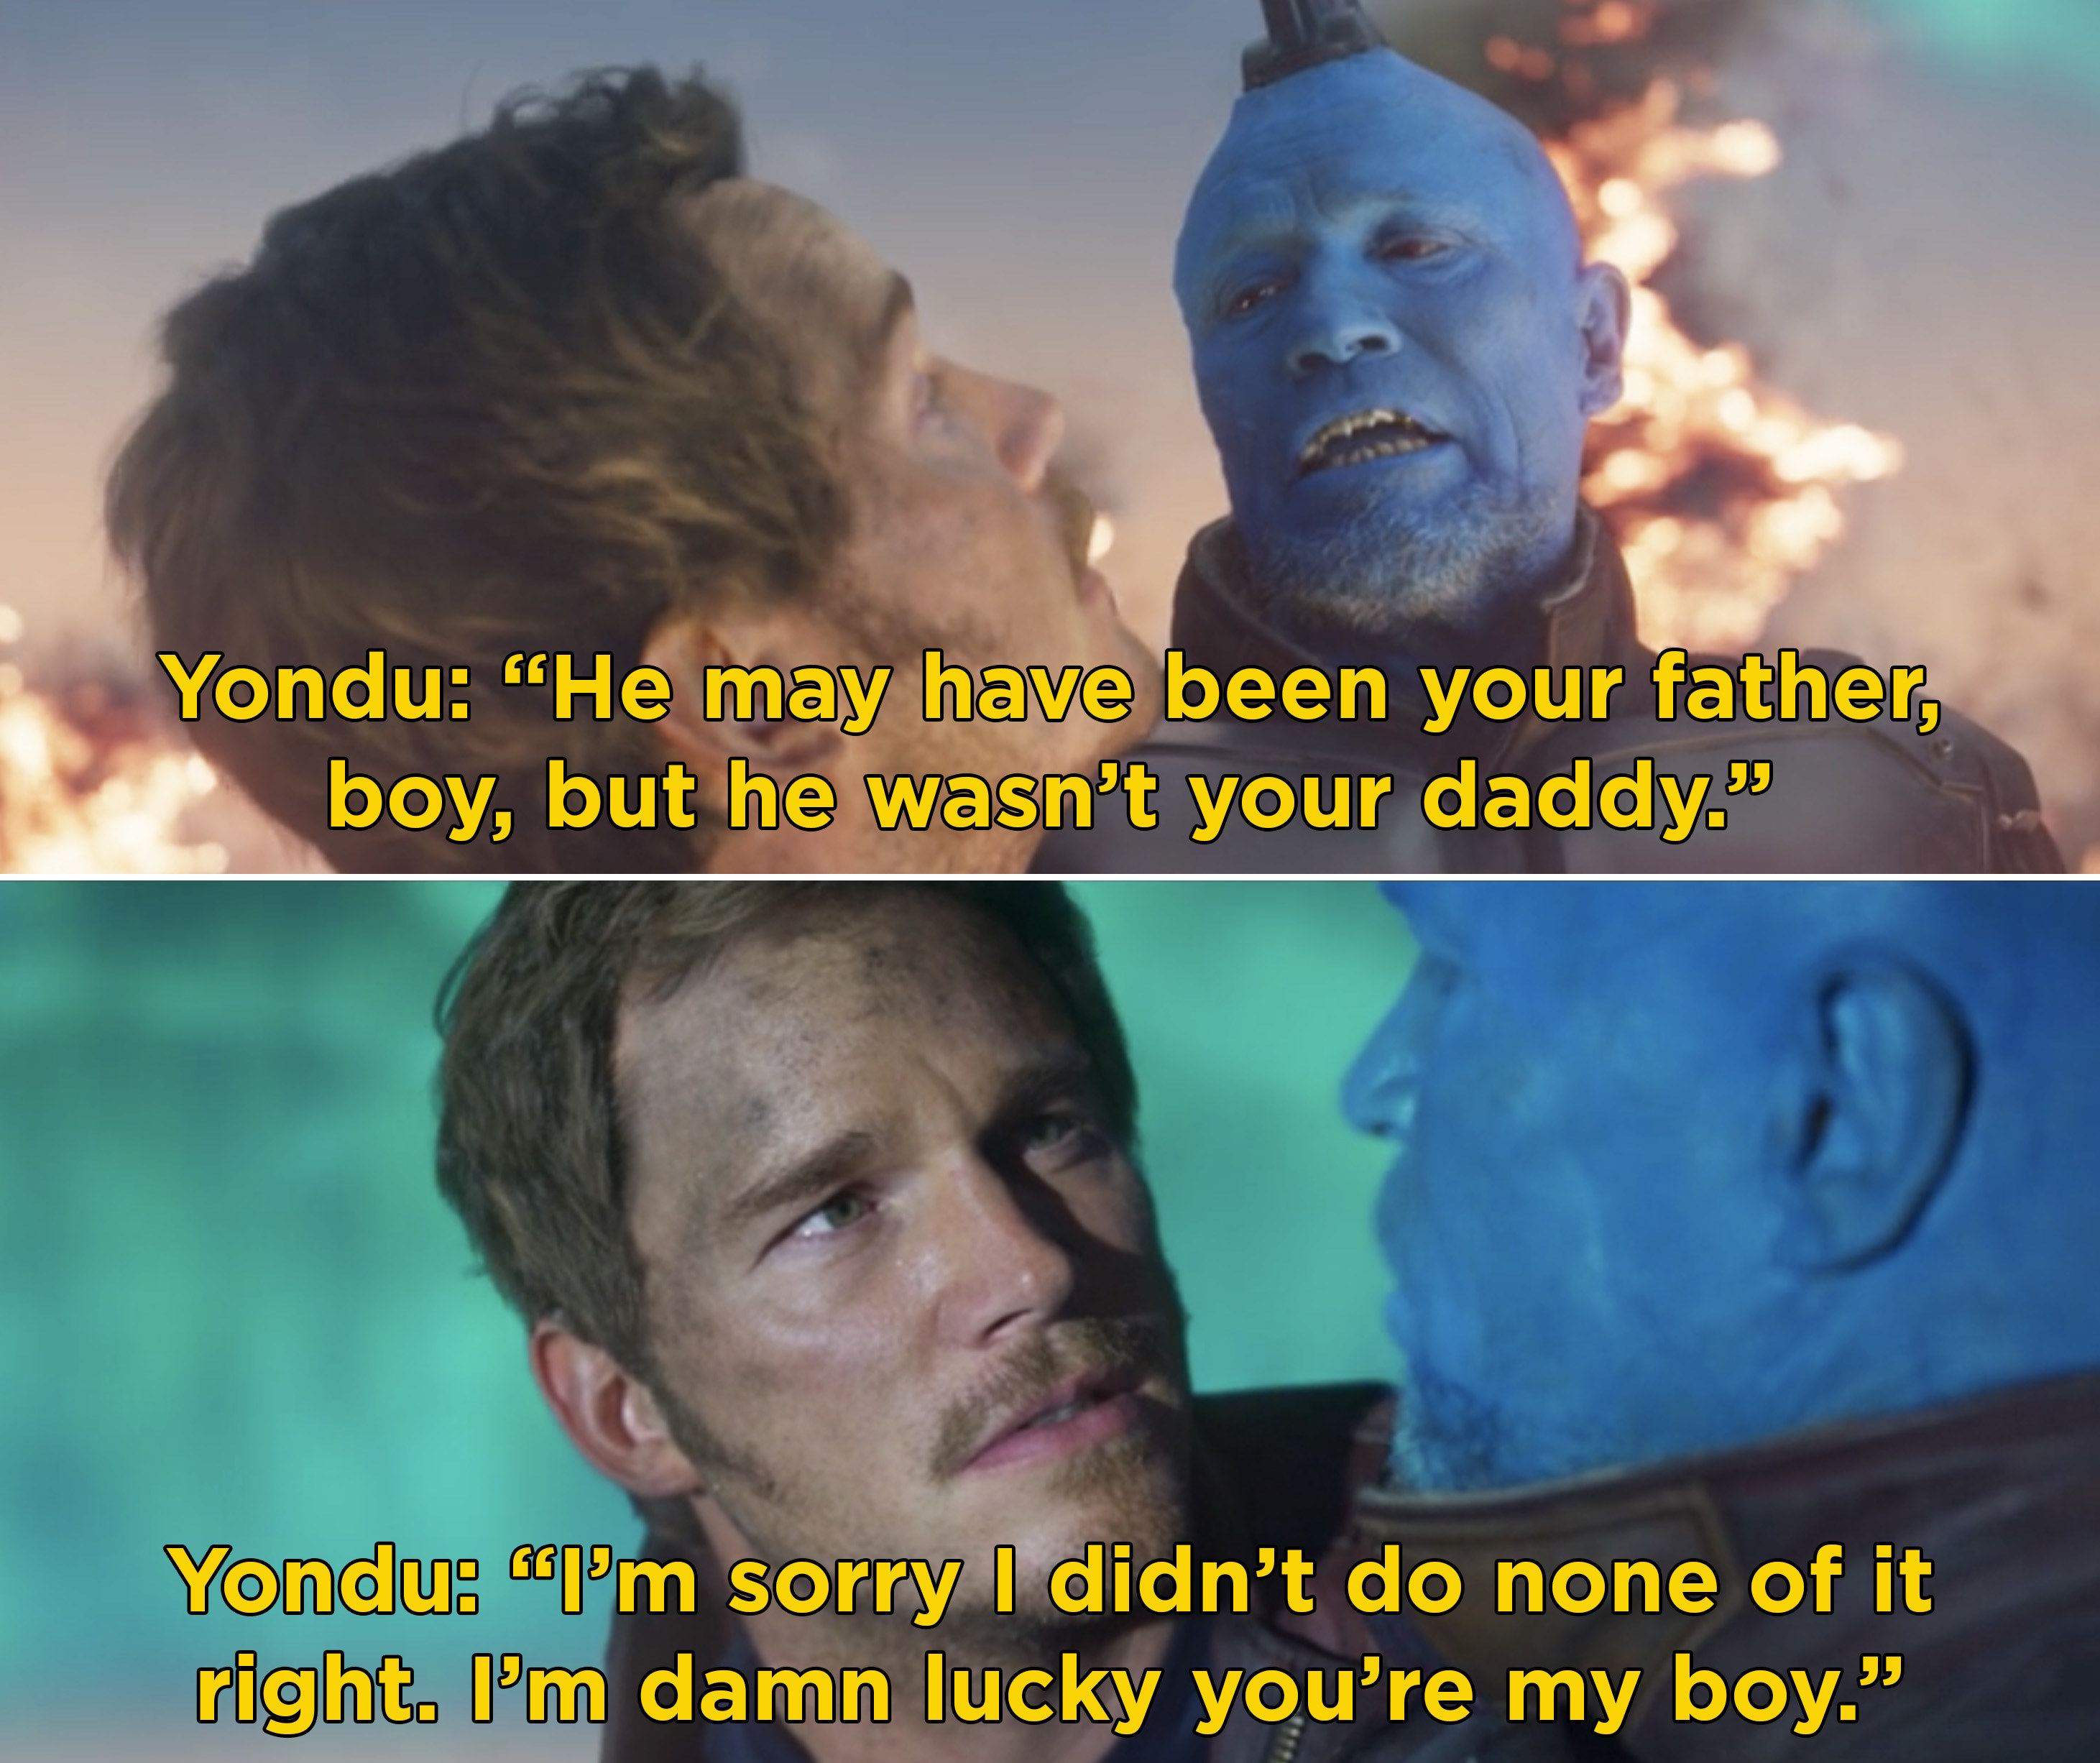 """Yondu saying, """"He may have been your father, boy, but he wasn't your daddy. I'm sorry I didn't do none of it right. I'm damn lucky you're my boy"""""""